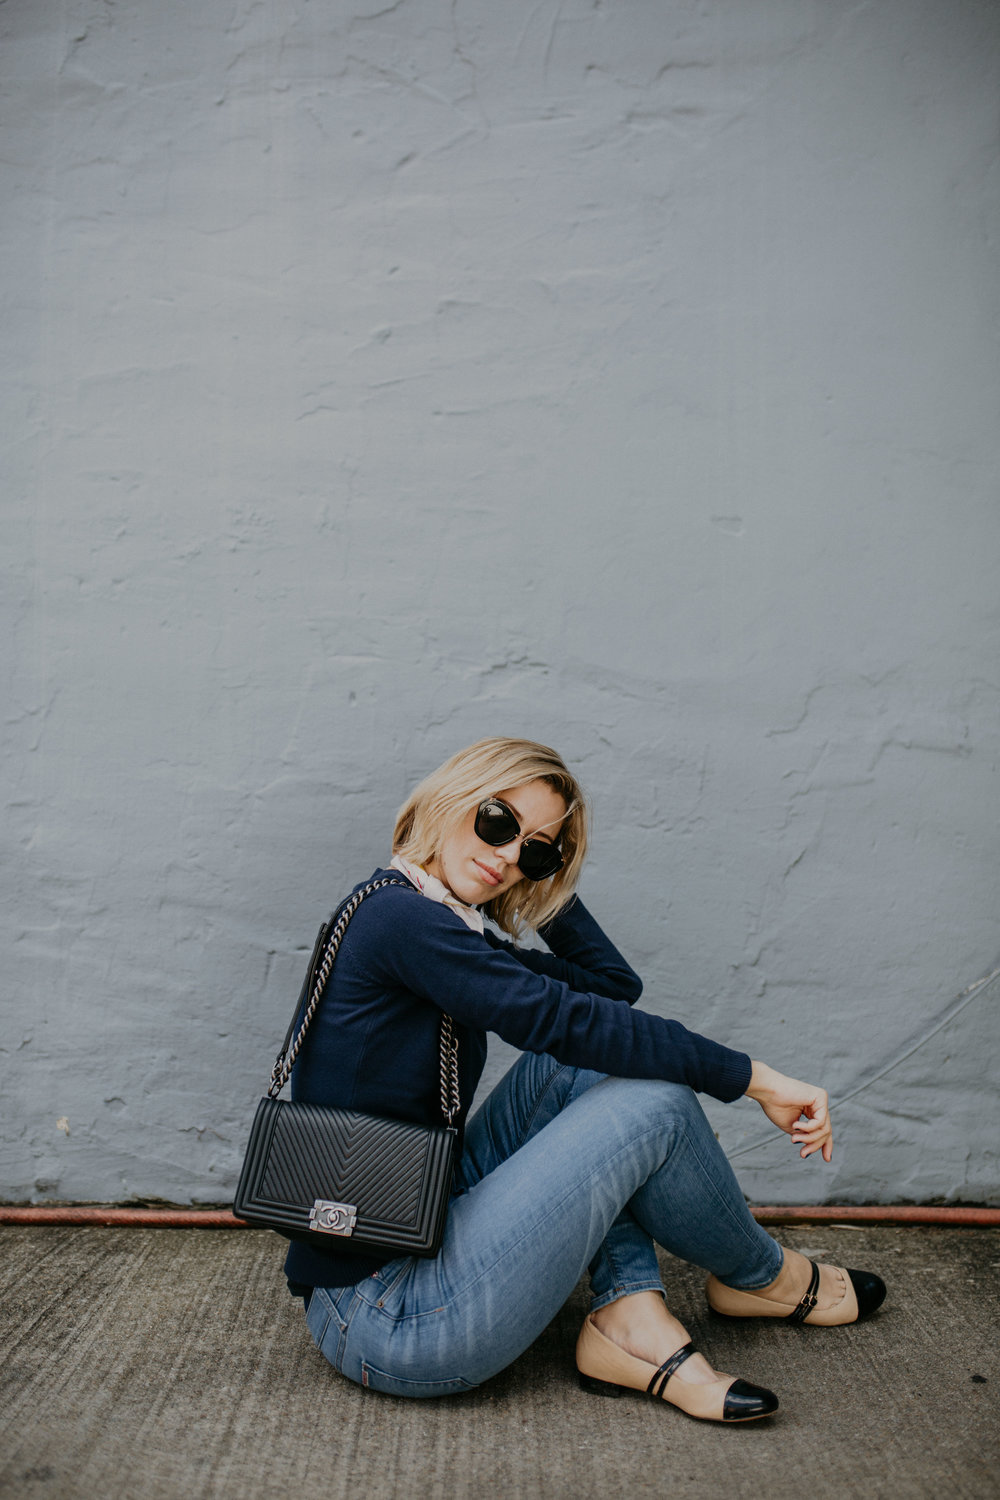 Photos by  Erin Krespan  // Wearing  Hudson Jeans via Fitcode  c/o,  Take 5 Boutique  sweater,  scarf (comes in a set of 4!)  and  nail polish in Odeon  via Odeme c/o,  Chanel bag via Bag, Borrow or Steal ,  Ukies flats ,  Fossil Q smartwatch  c/o,  Sophie Blake    bracelet,  Miu Miu sunnies